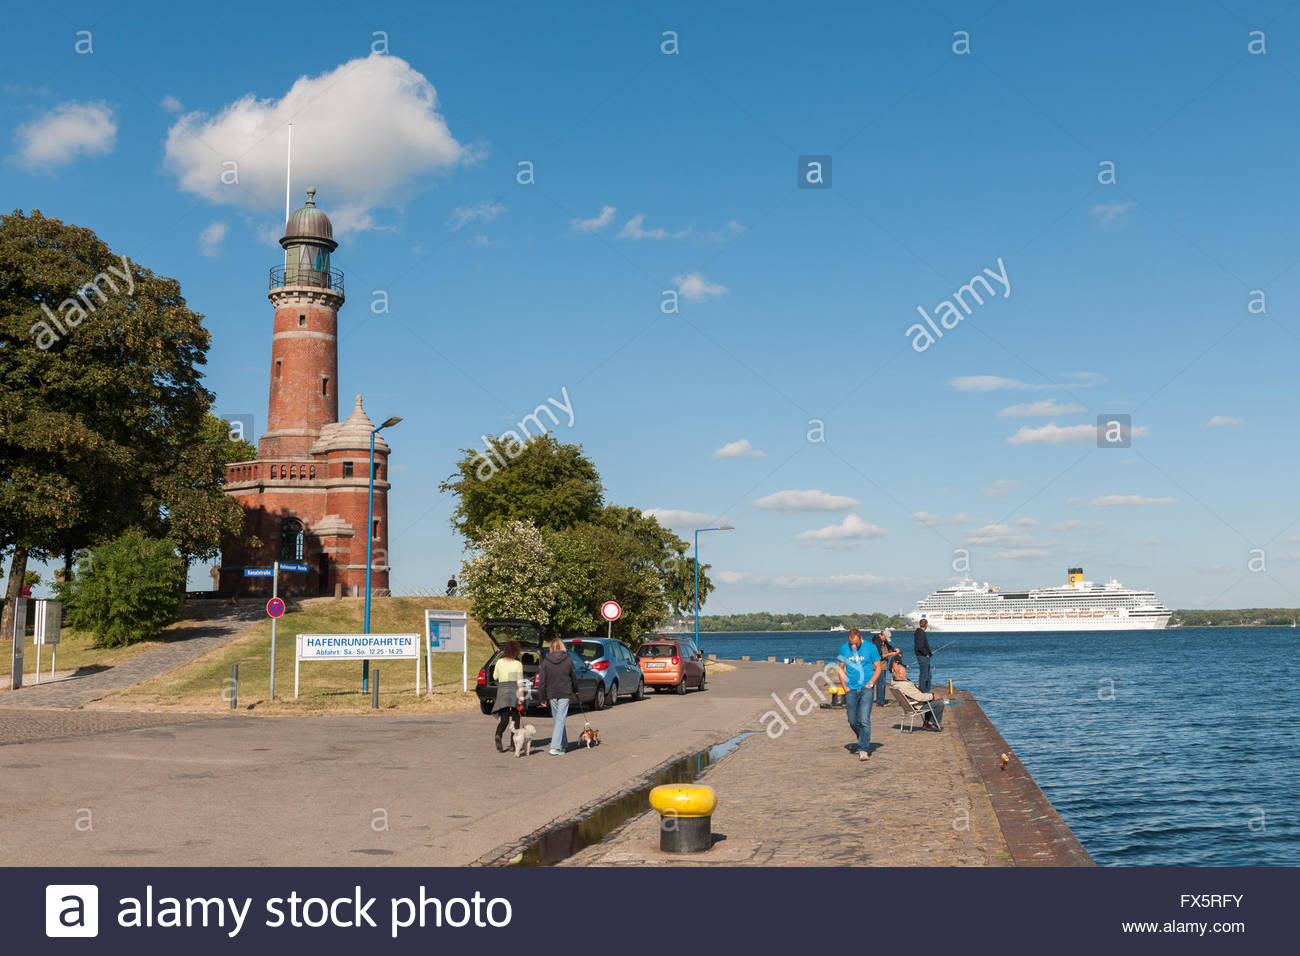 Lighthouse, Kiel, Holtenau, Schleswig-Holstein, Germany / Kiel - Stock Image